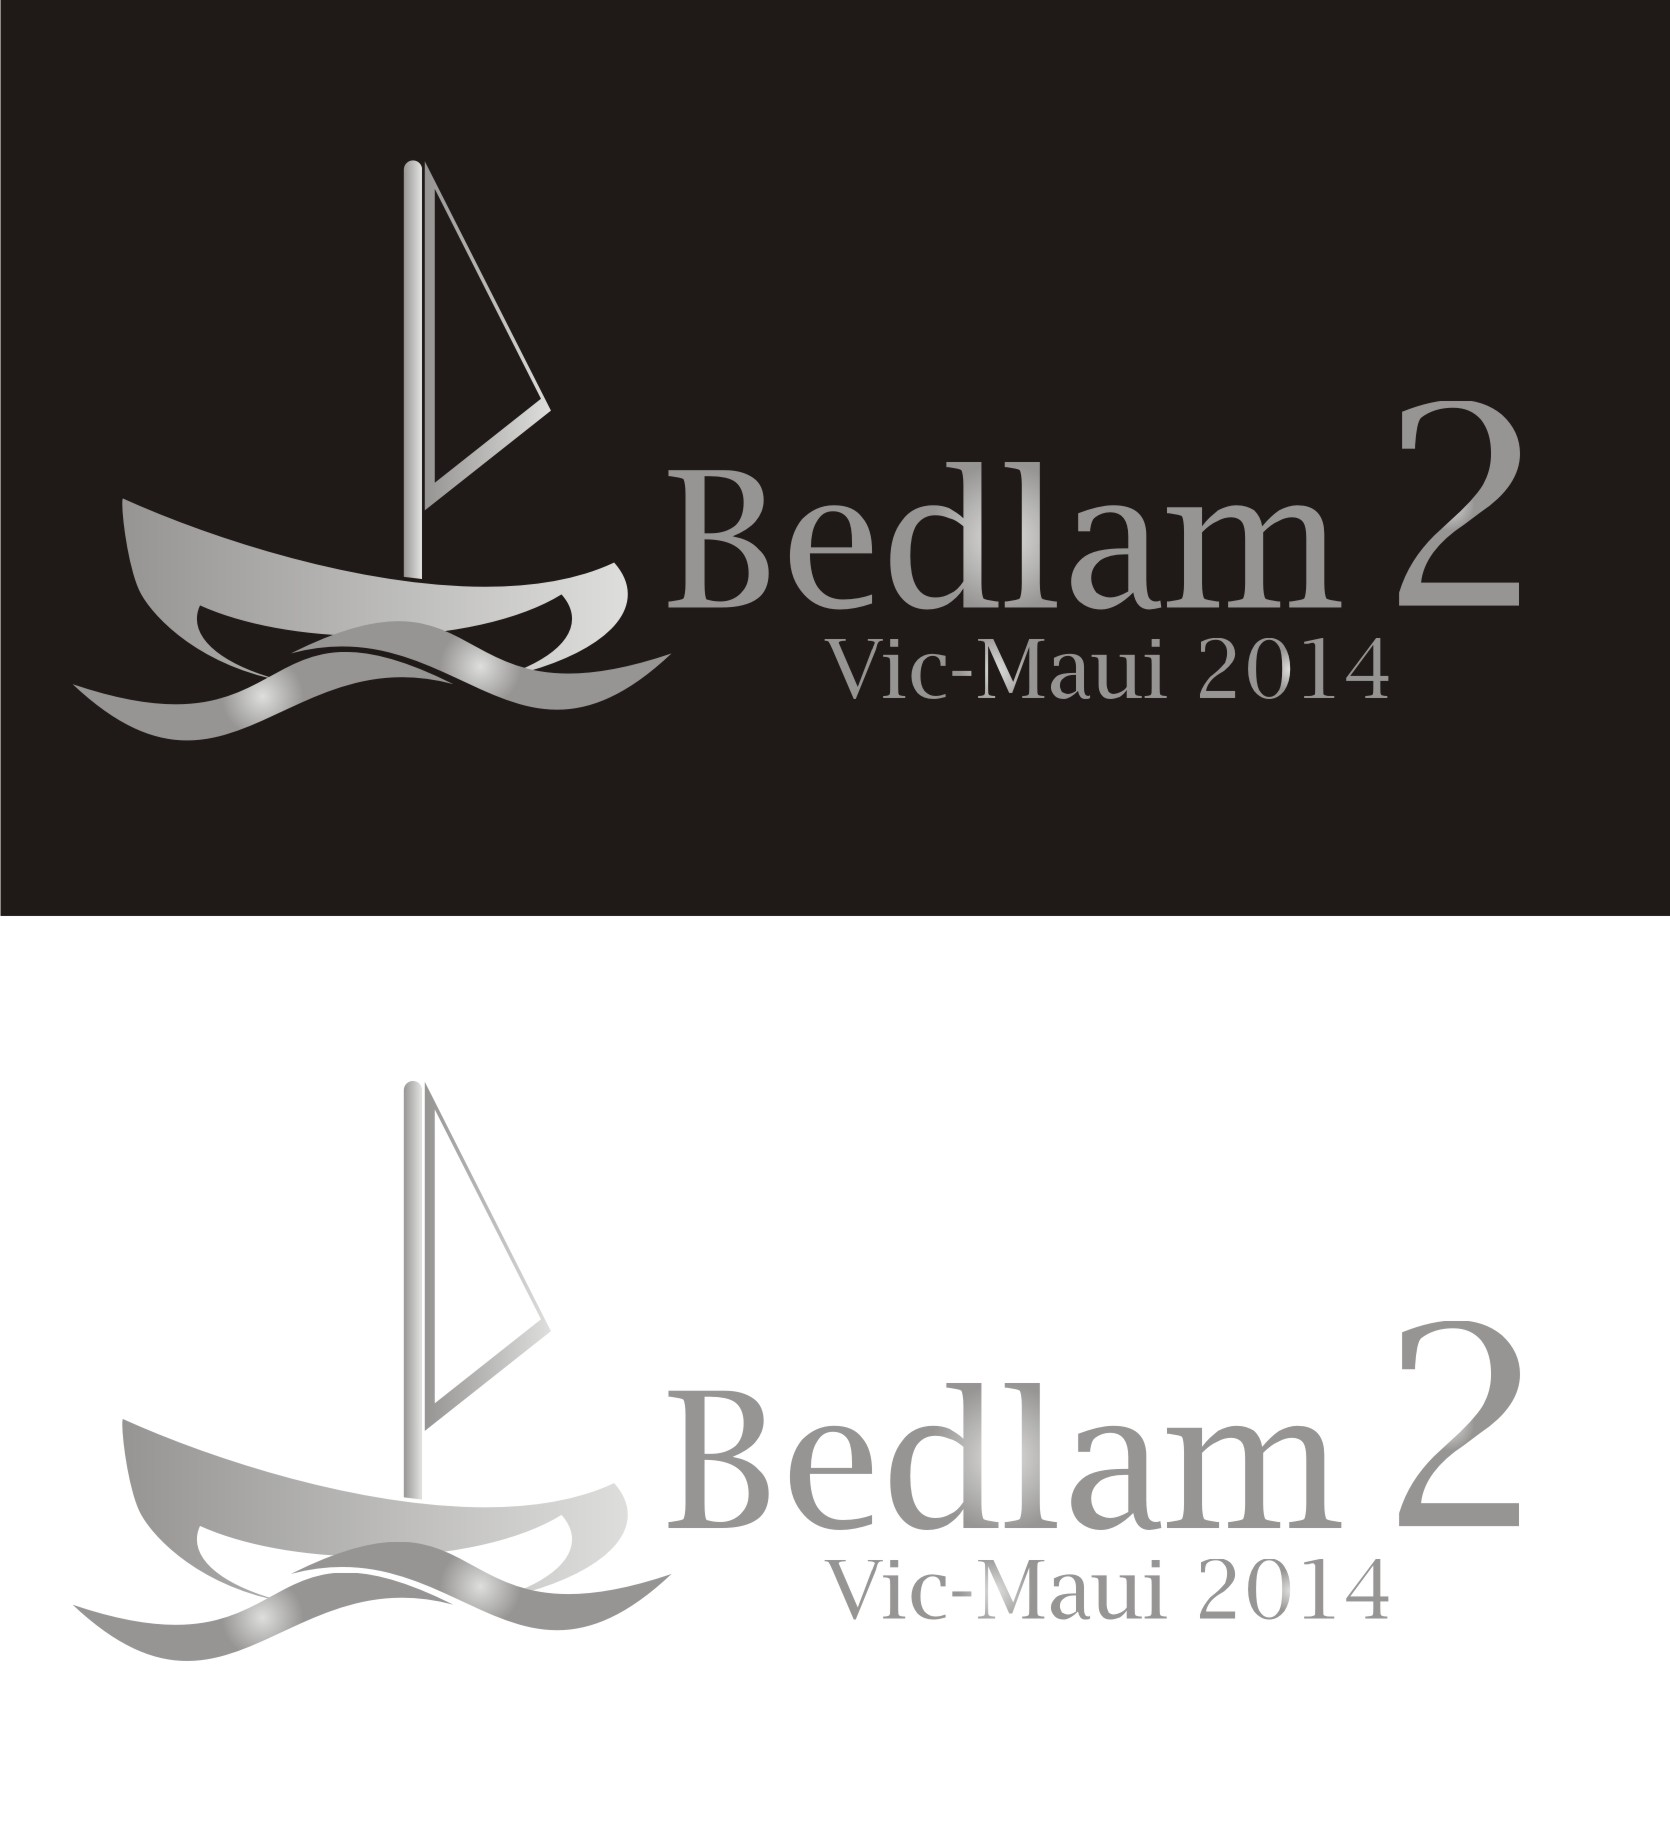 Logo Design by Yuda Hermawan - Entry No. 34 in the Logo Design Contest Artistic Logo Design for Bedlam 2  Vic-Maui 2014.